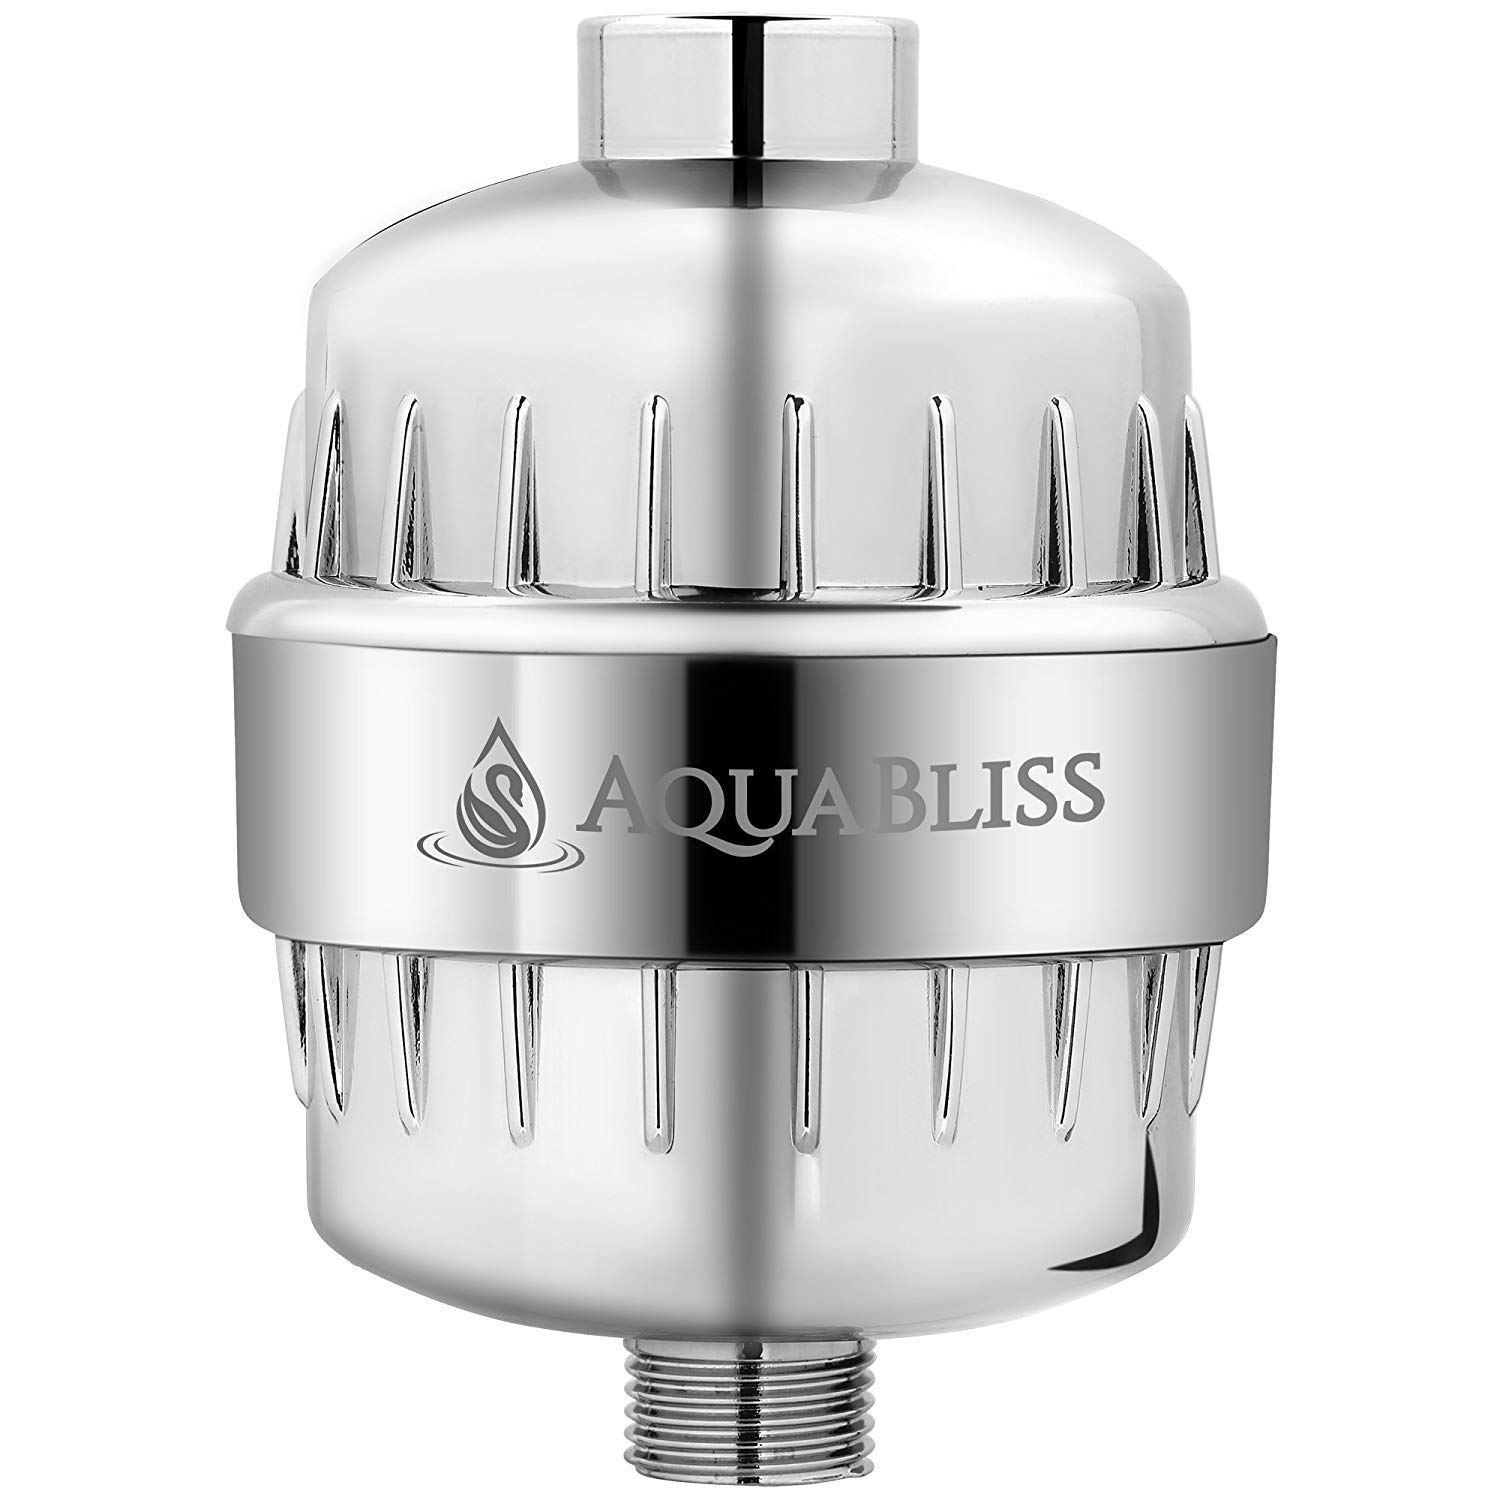 5. AquaBliss High Output Revitalizing Shower Filter